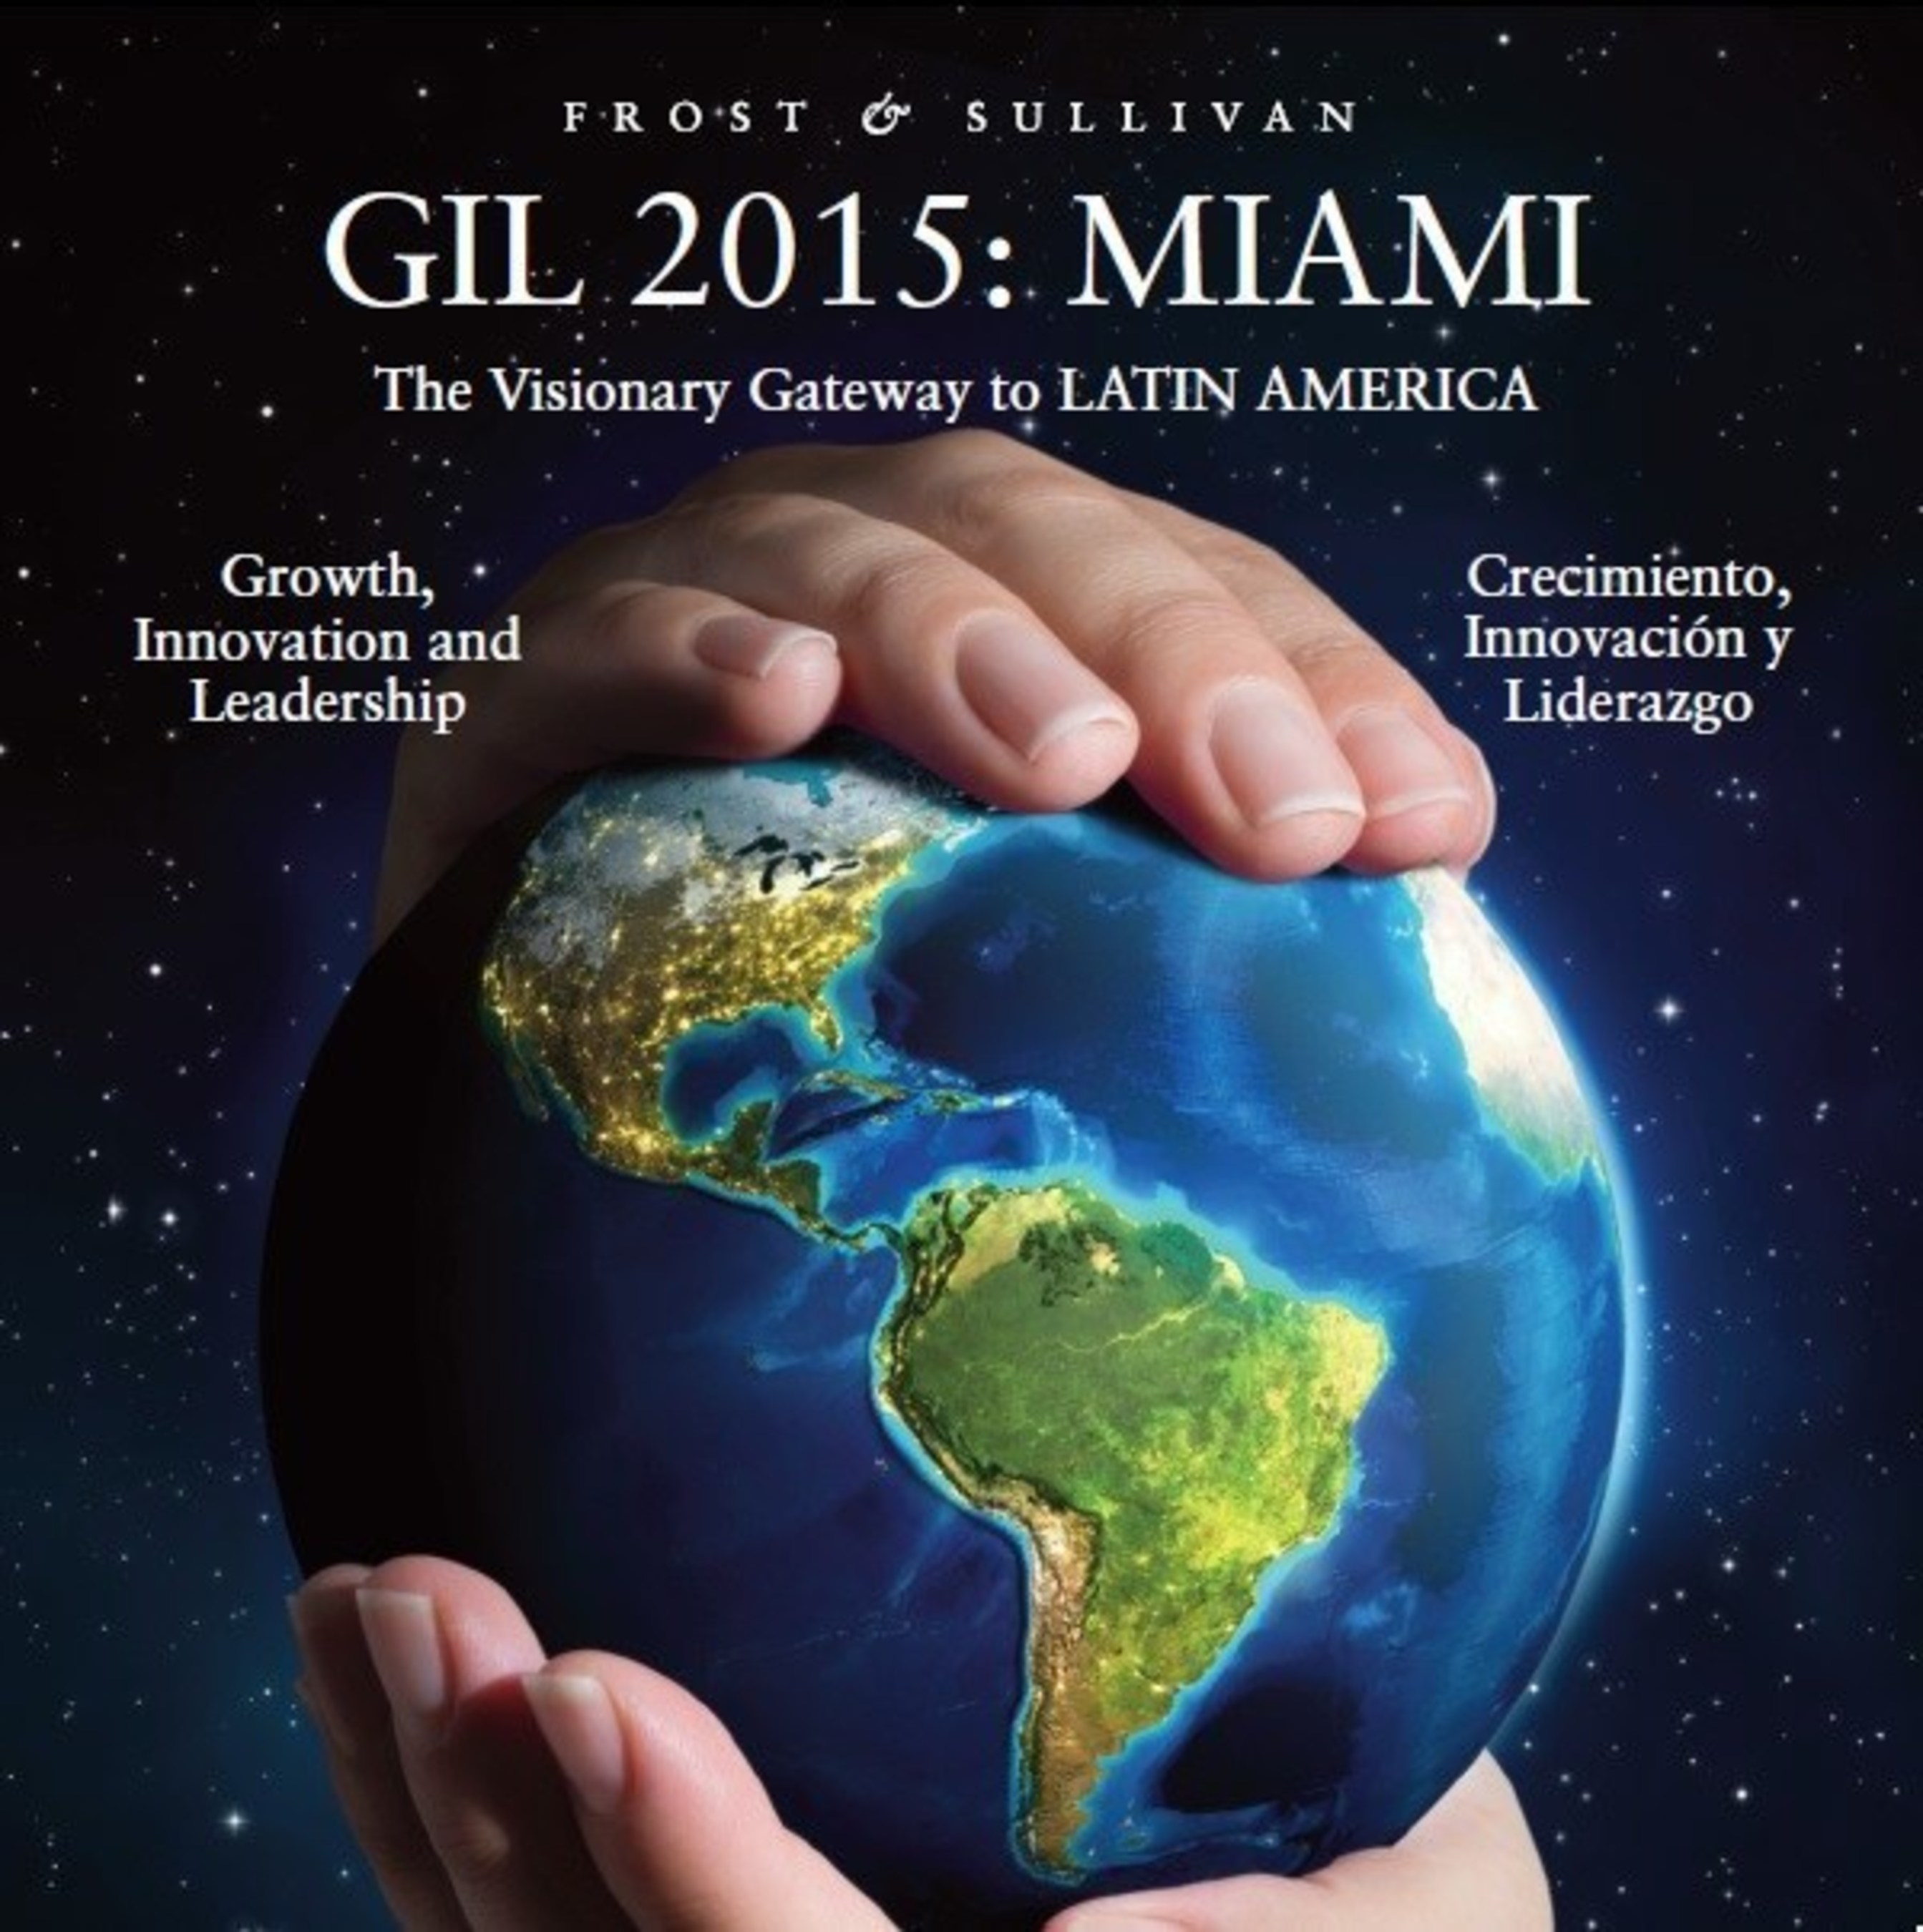 Miami to Rise as Emerging Hub of Innovation and Gateway to Latin America, says Frost & Sullivan